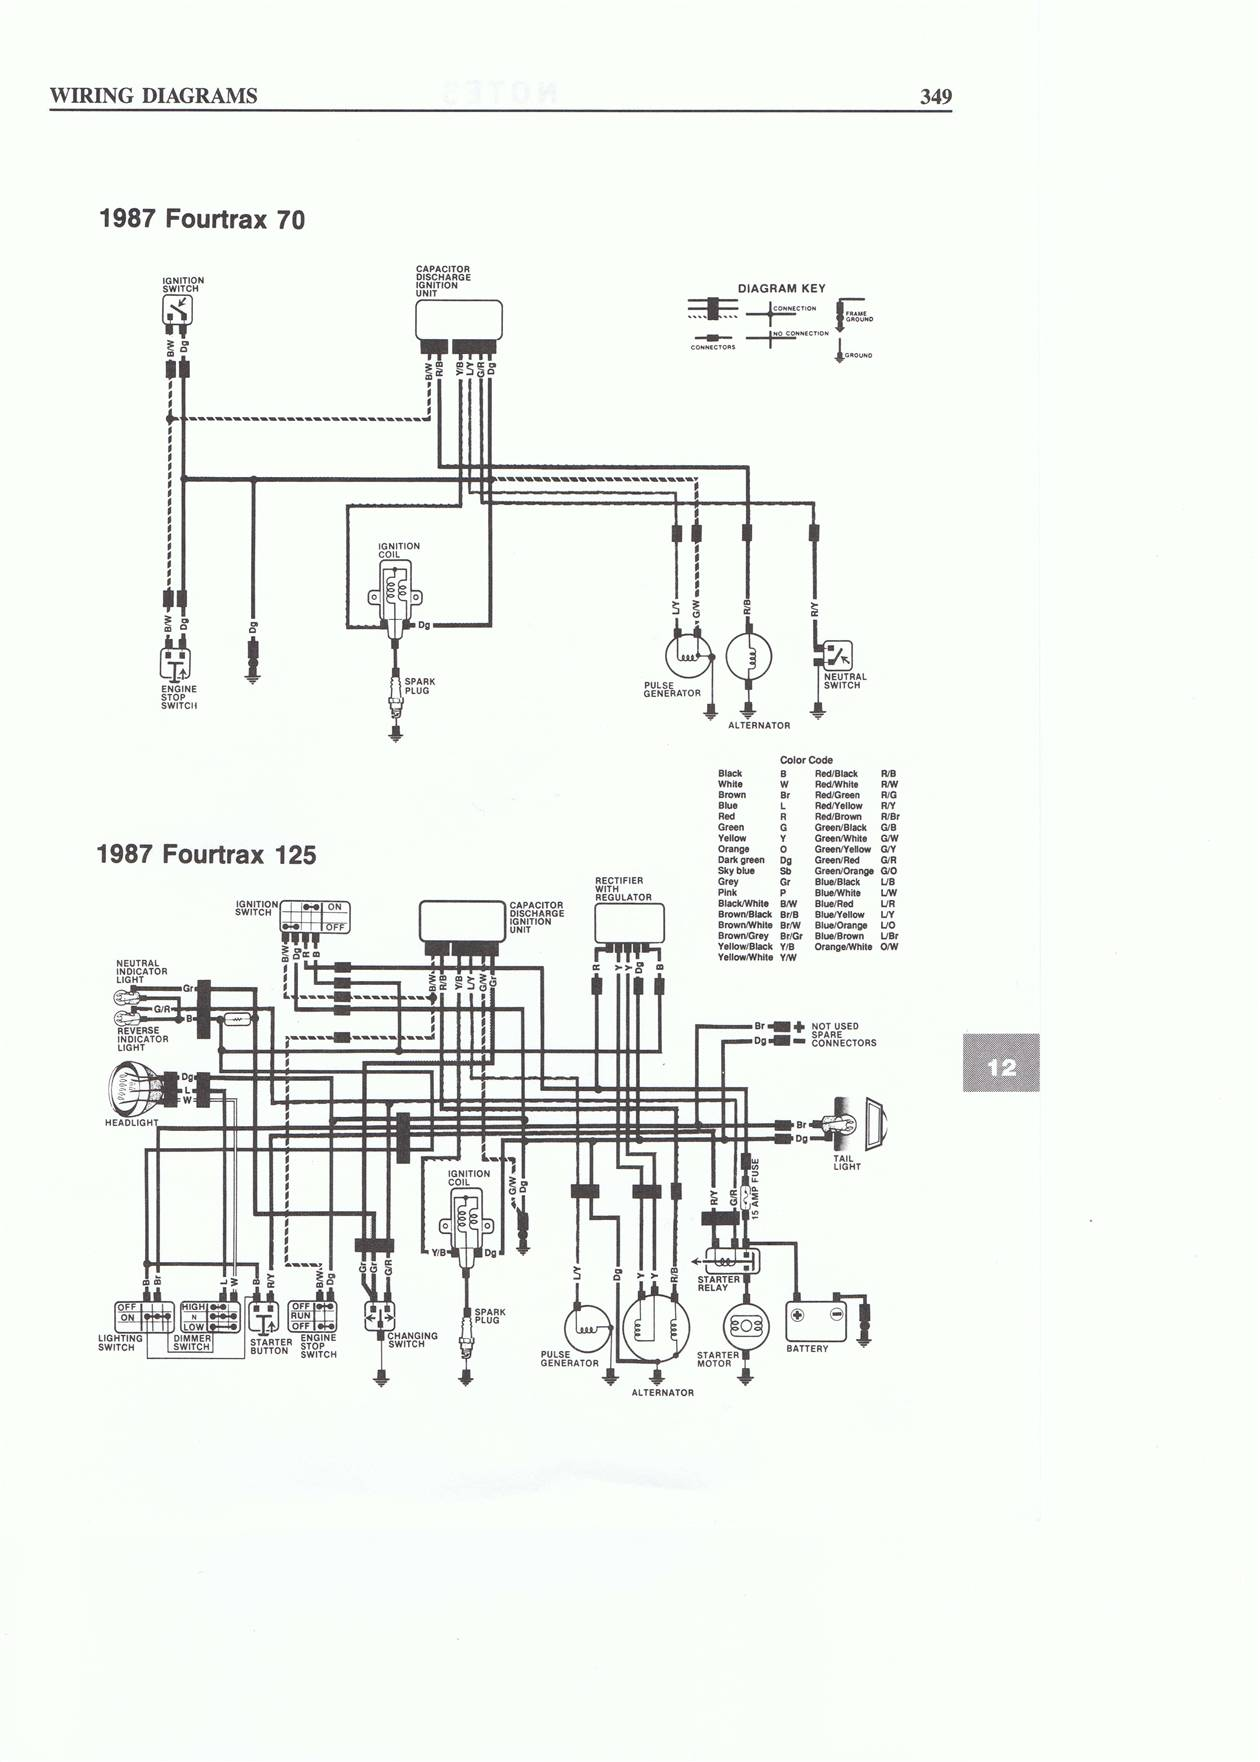 Wiring Diagram For Gy6 150Cc Engine